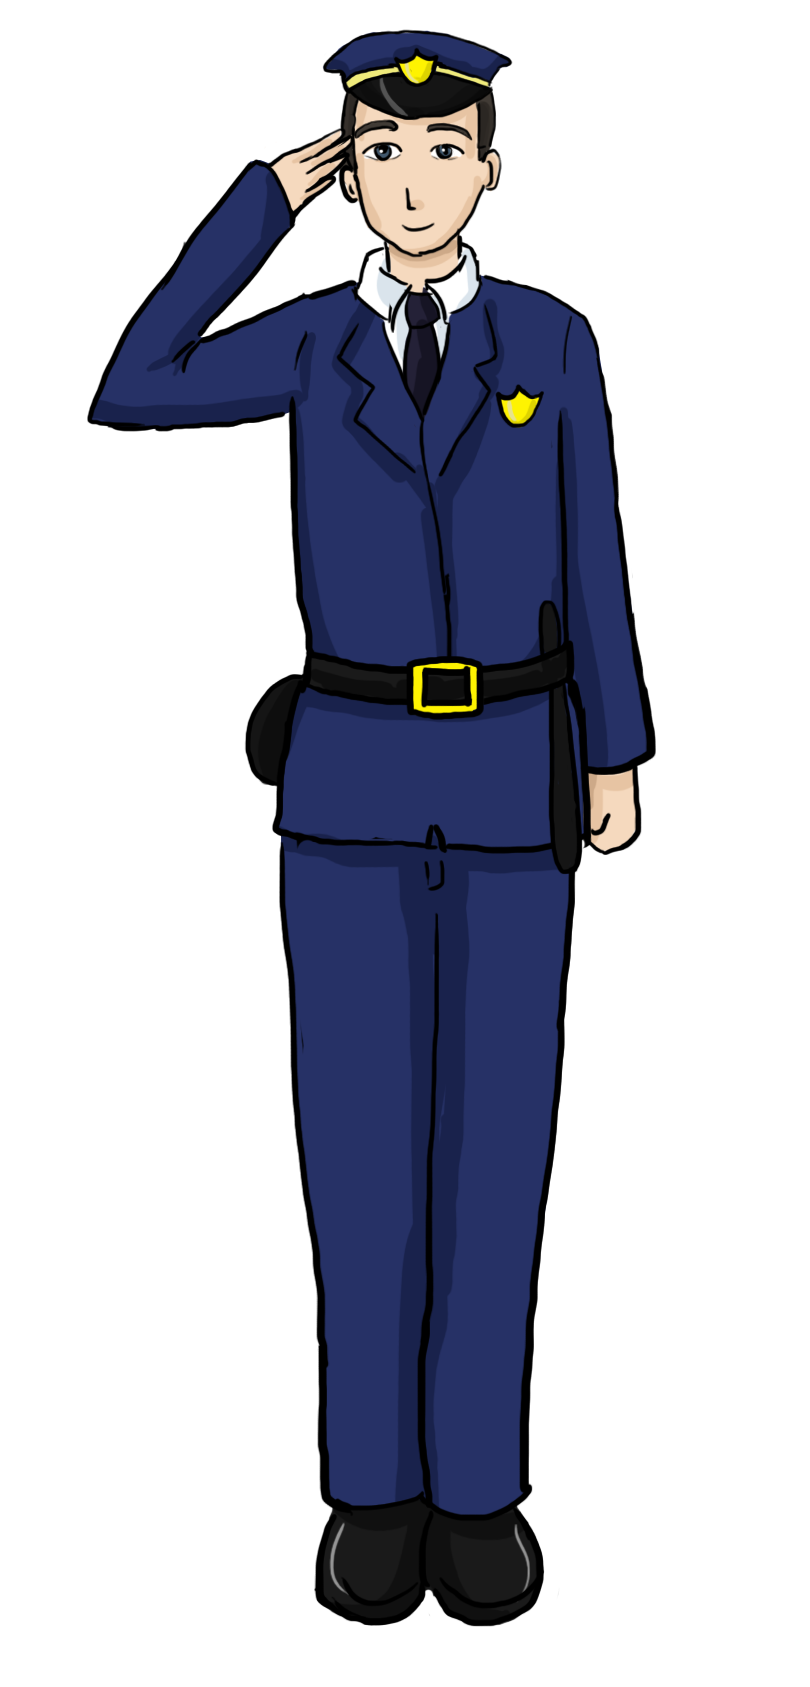 Policeman Uniform Clipart